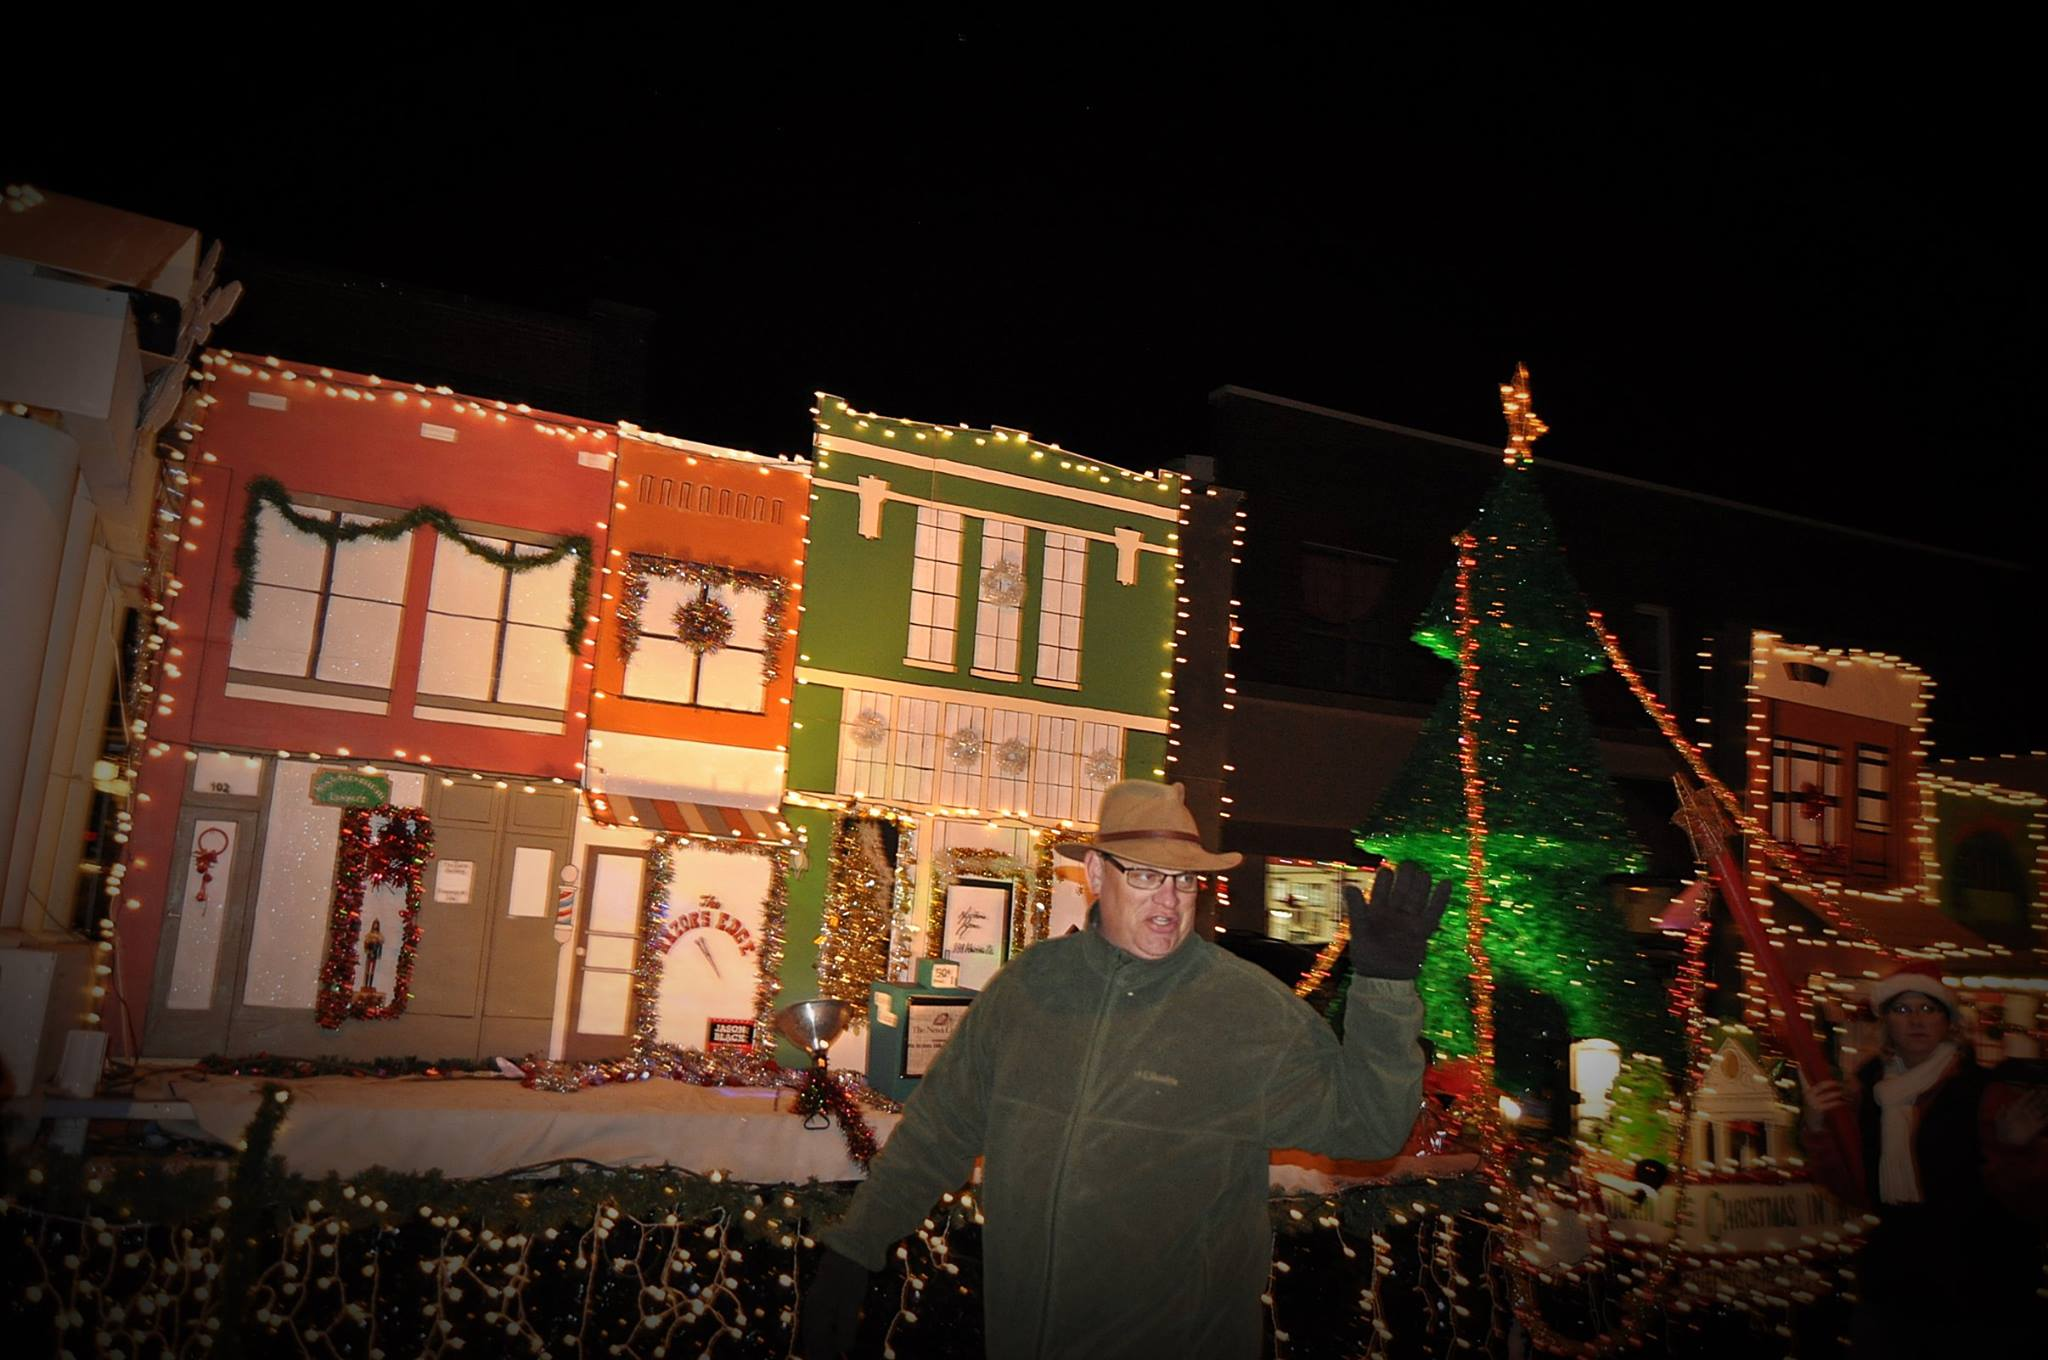 https://alabama-travel.s3.amazonaws.com/partners-uploads/photo/image/5b17f63524f2394556000129/athens_christmas_parade_jason_black.jpg